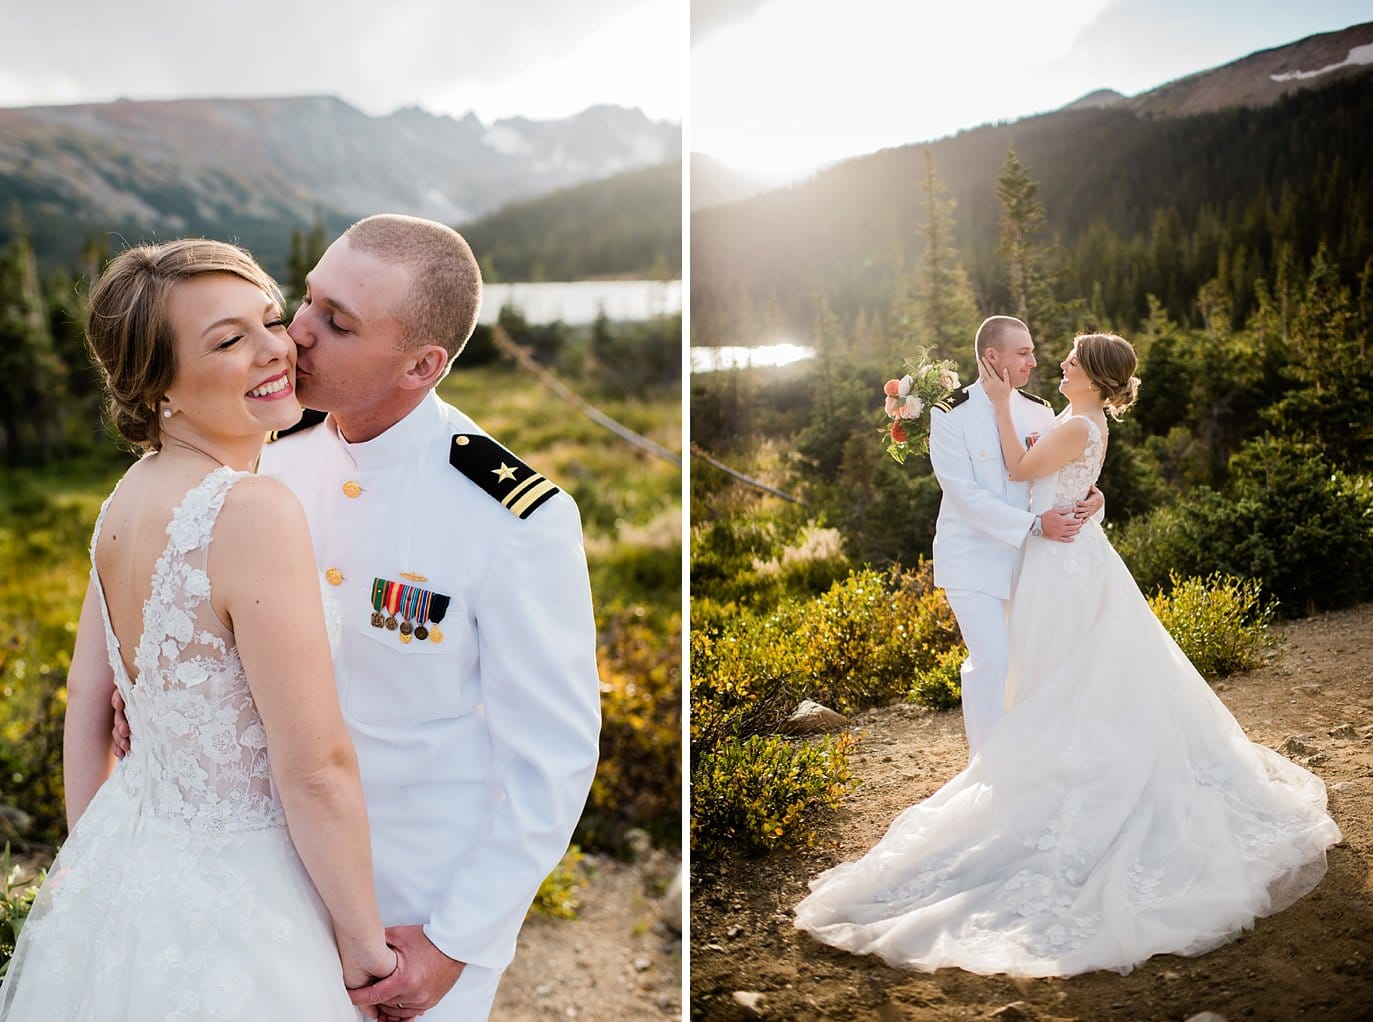 Romantic Long Lake Elopement with bride in lace ballgown and groom in military dress